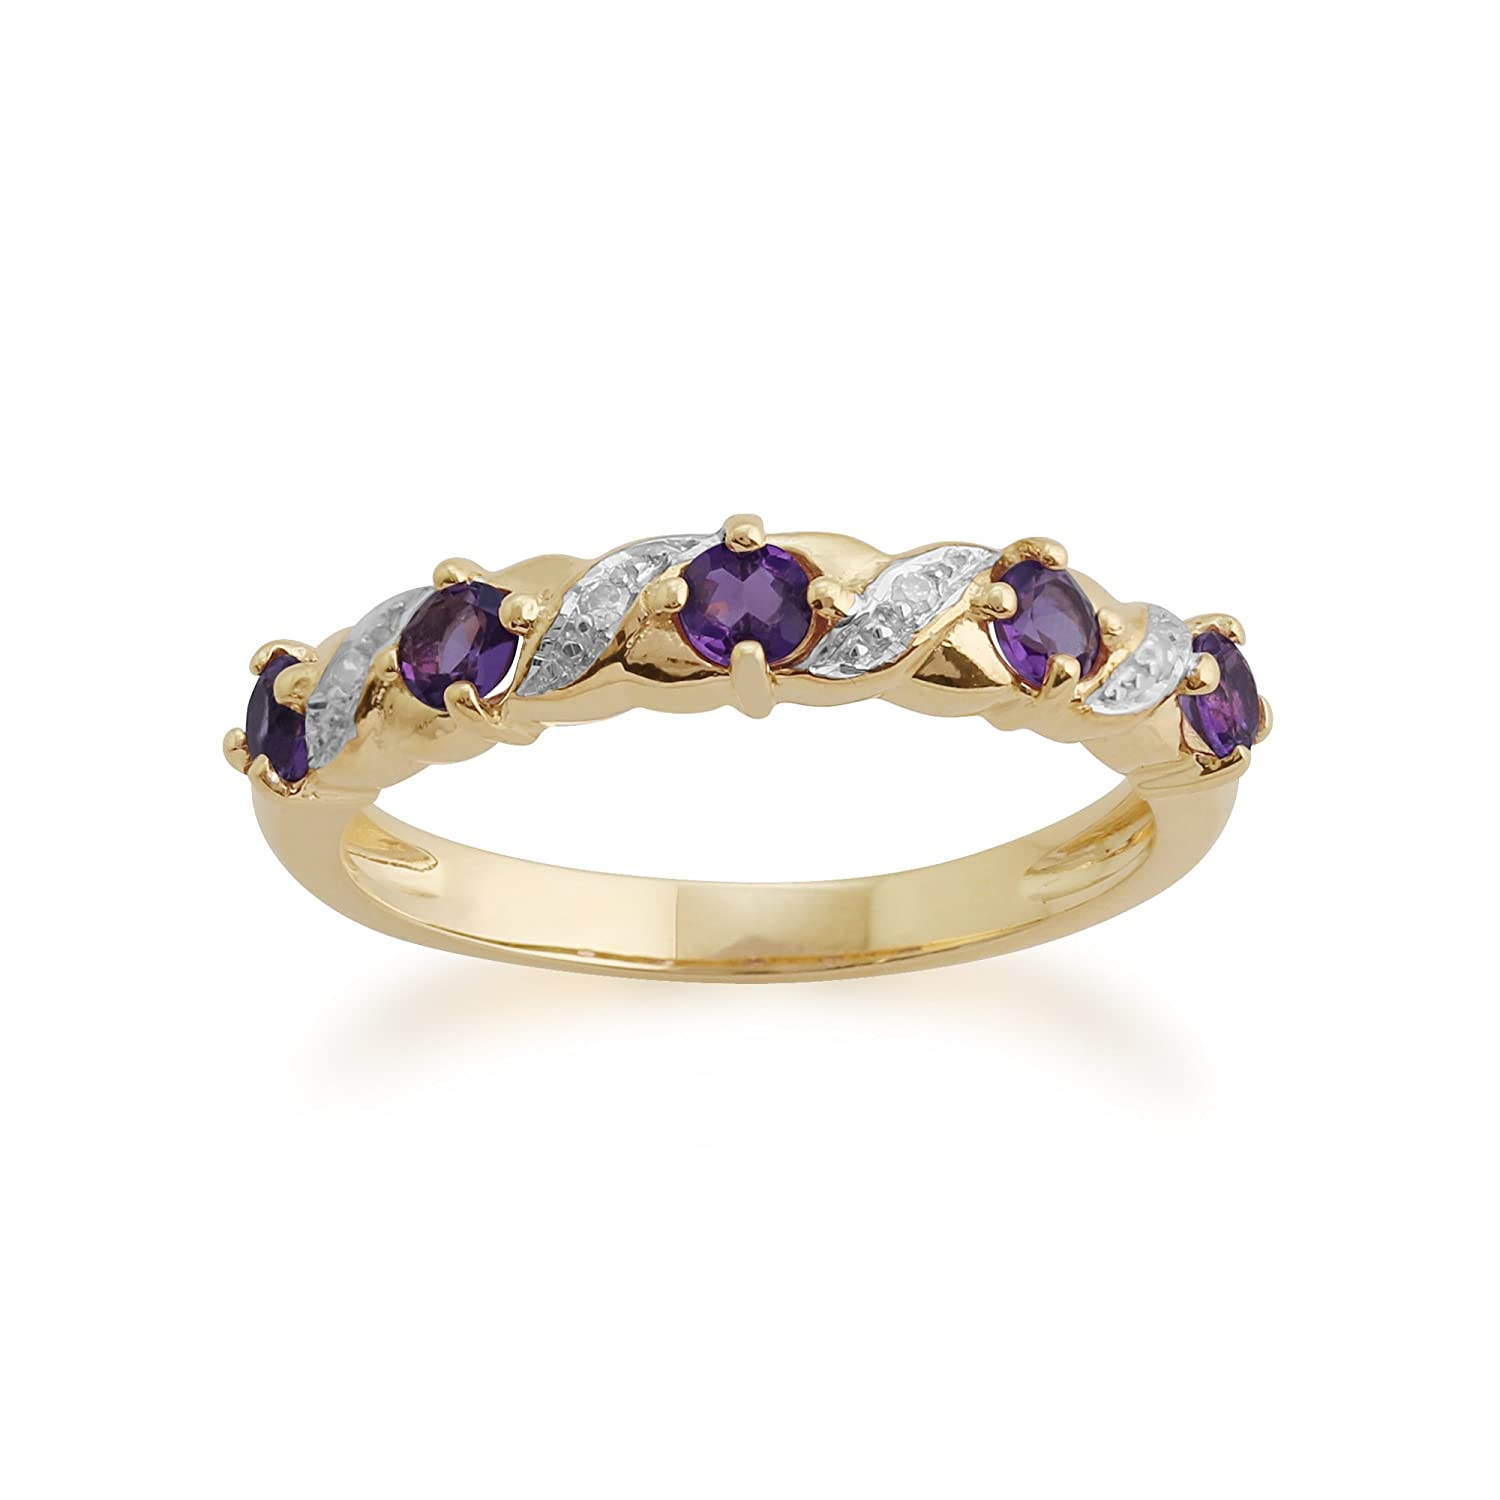 Gemondo Amethyst Ring, 9ct Yellow Gold 0.40ct Amethyst & Diamond Half Eternity Ring